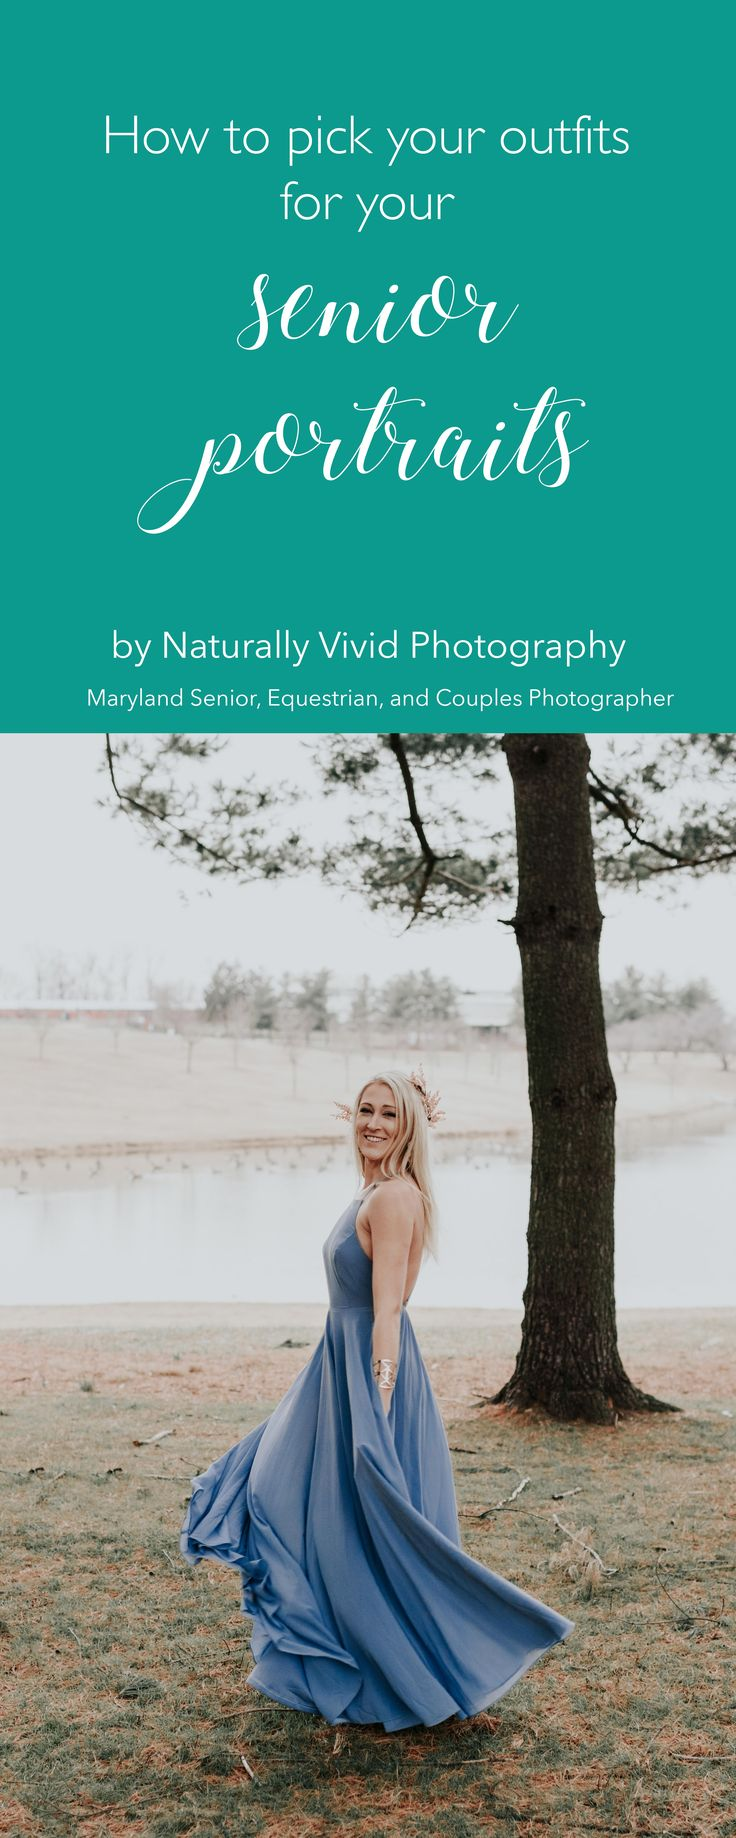 How to pick your outfits for your senior portraits | Carroll County Maryland Senior Portrait Photographer | Naturally Vivid Photography